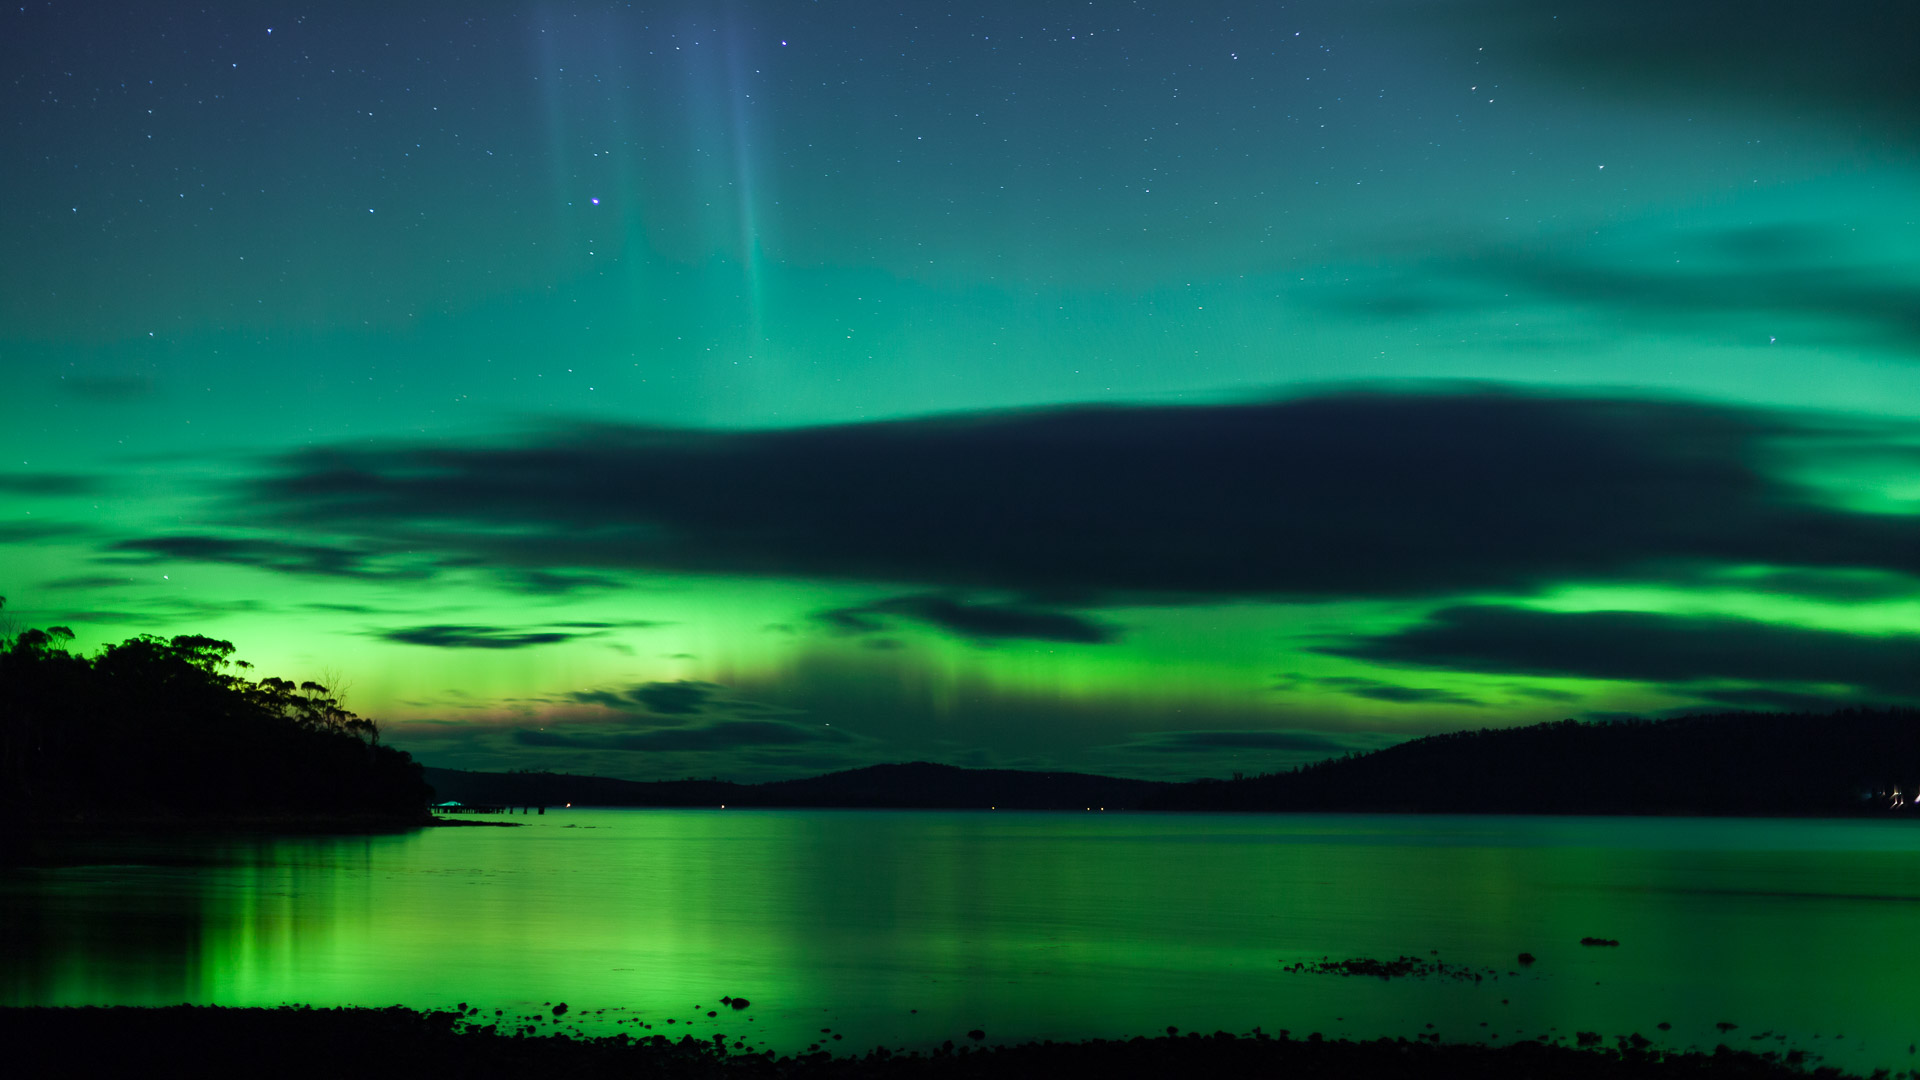 Hues of green shimmers across the night sky - Aurora Australis Southern Lights